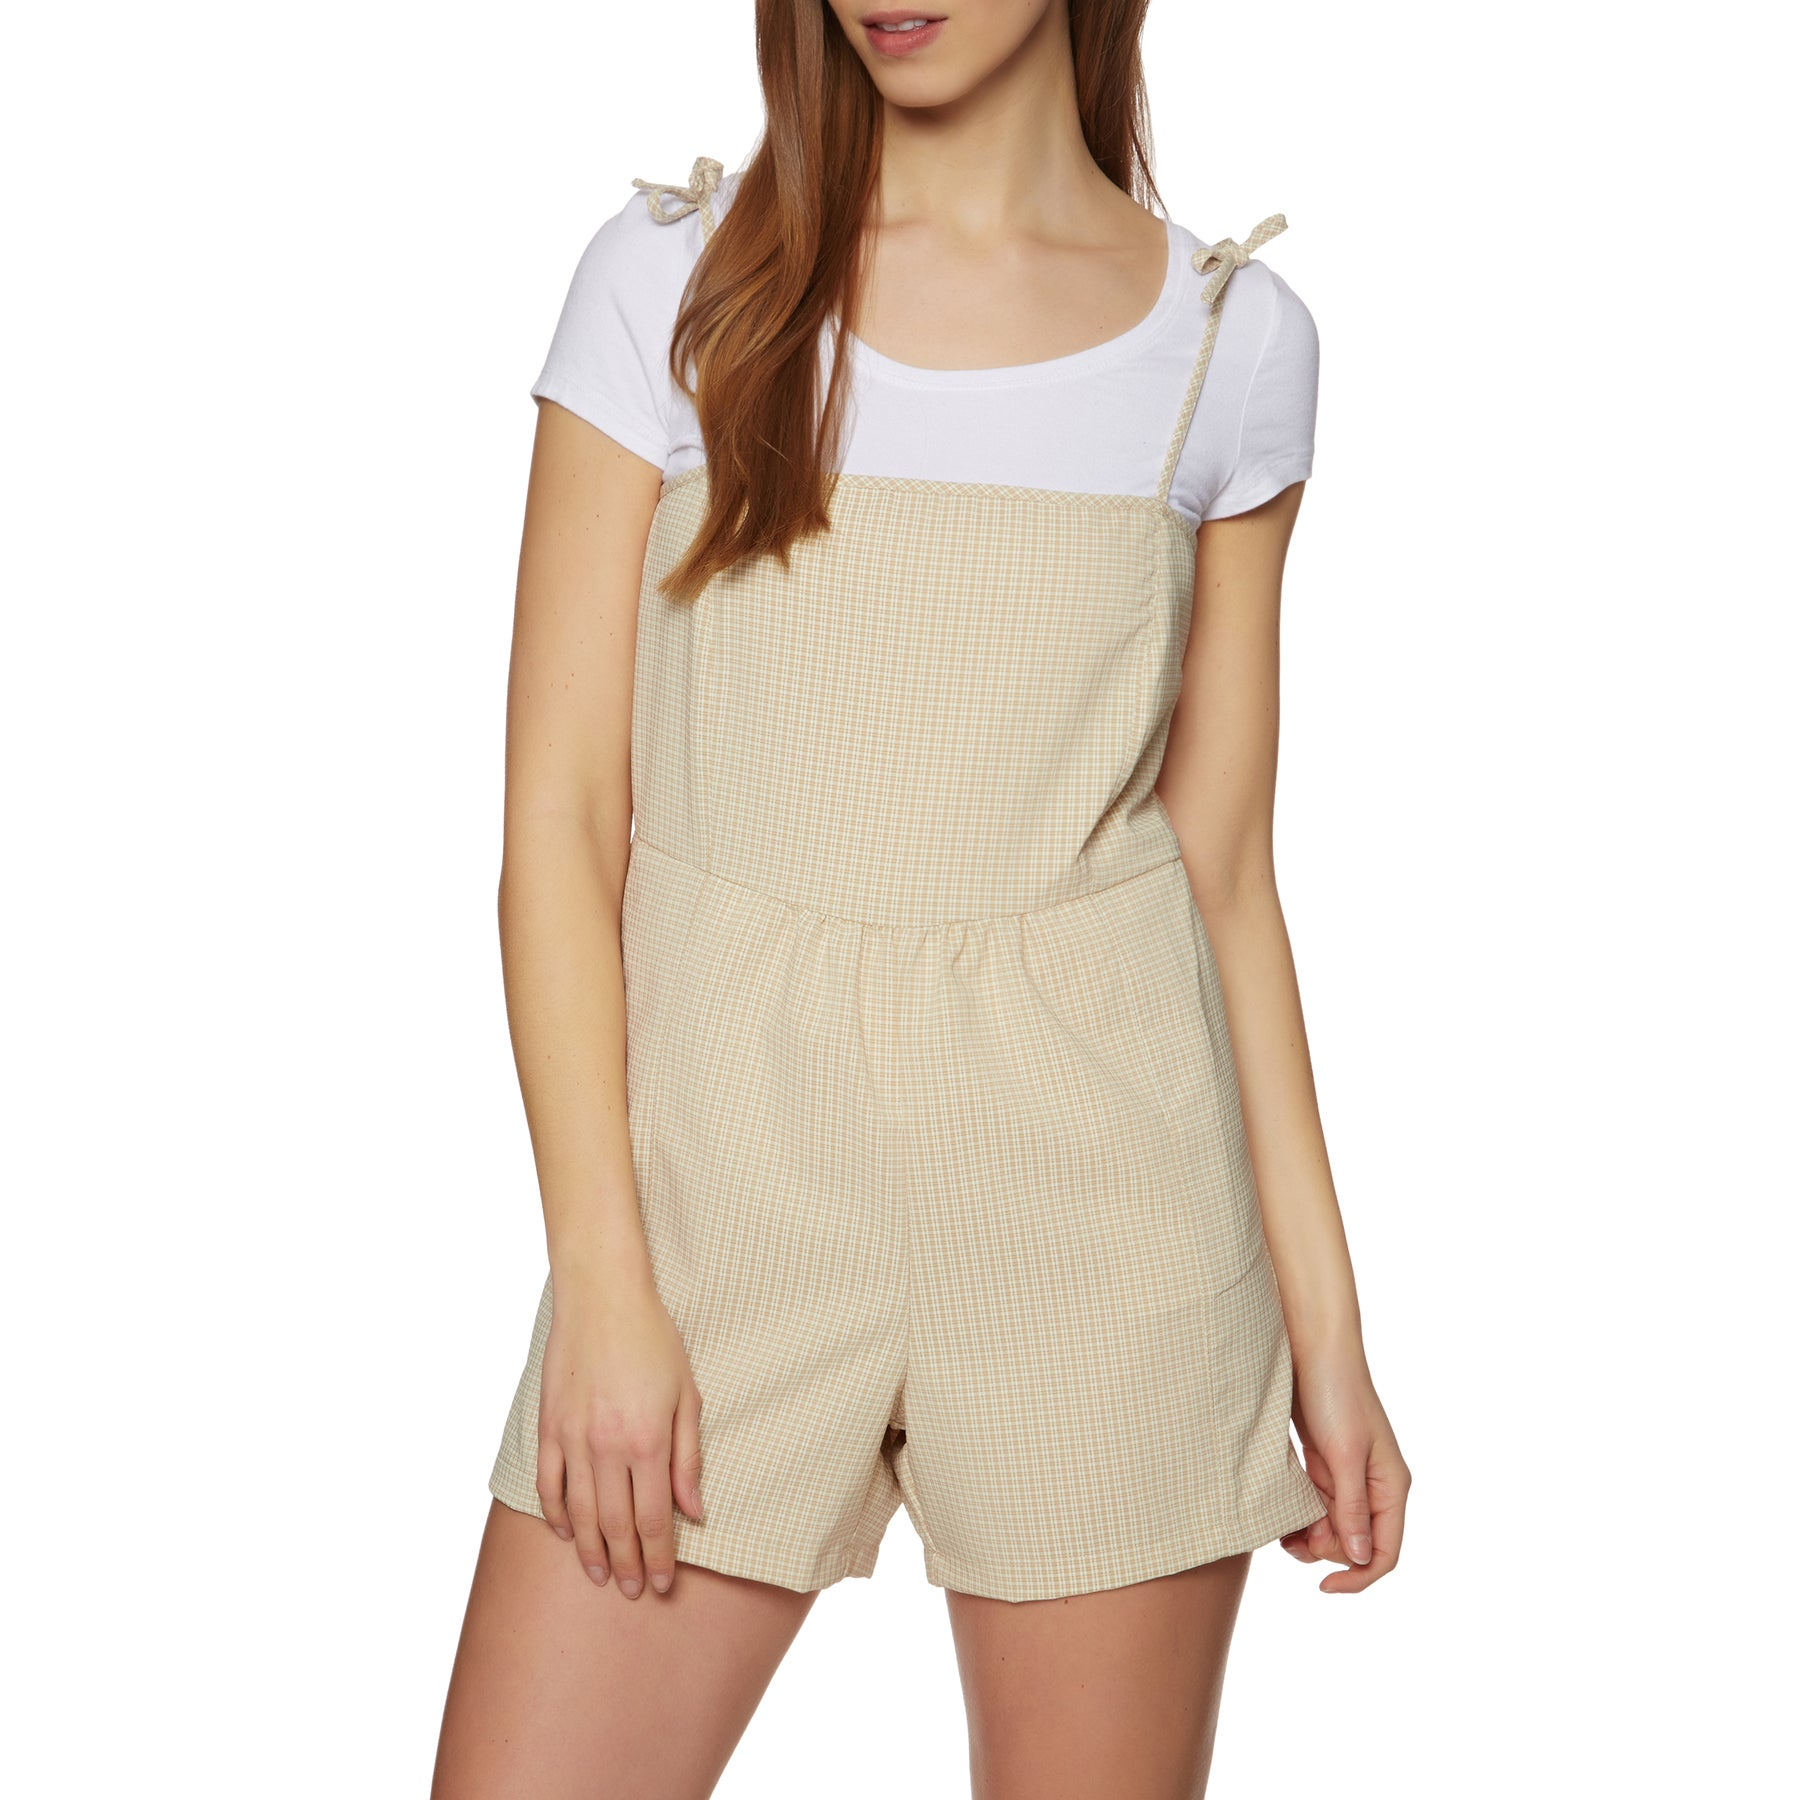 SWELL Faraway Womens Playsuit - Natural